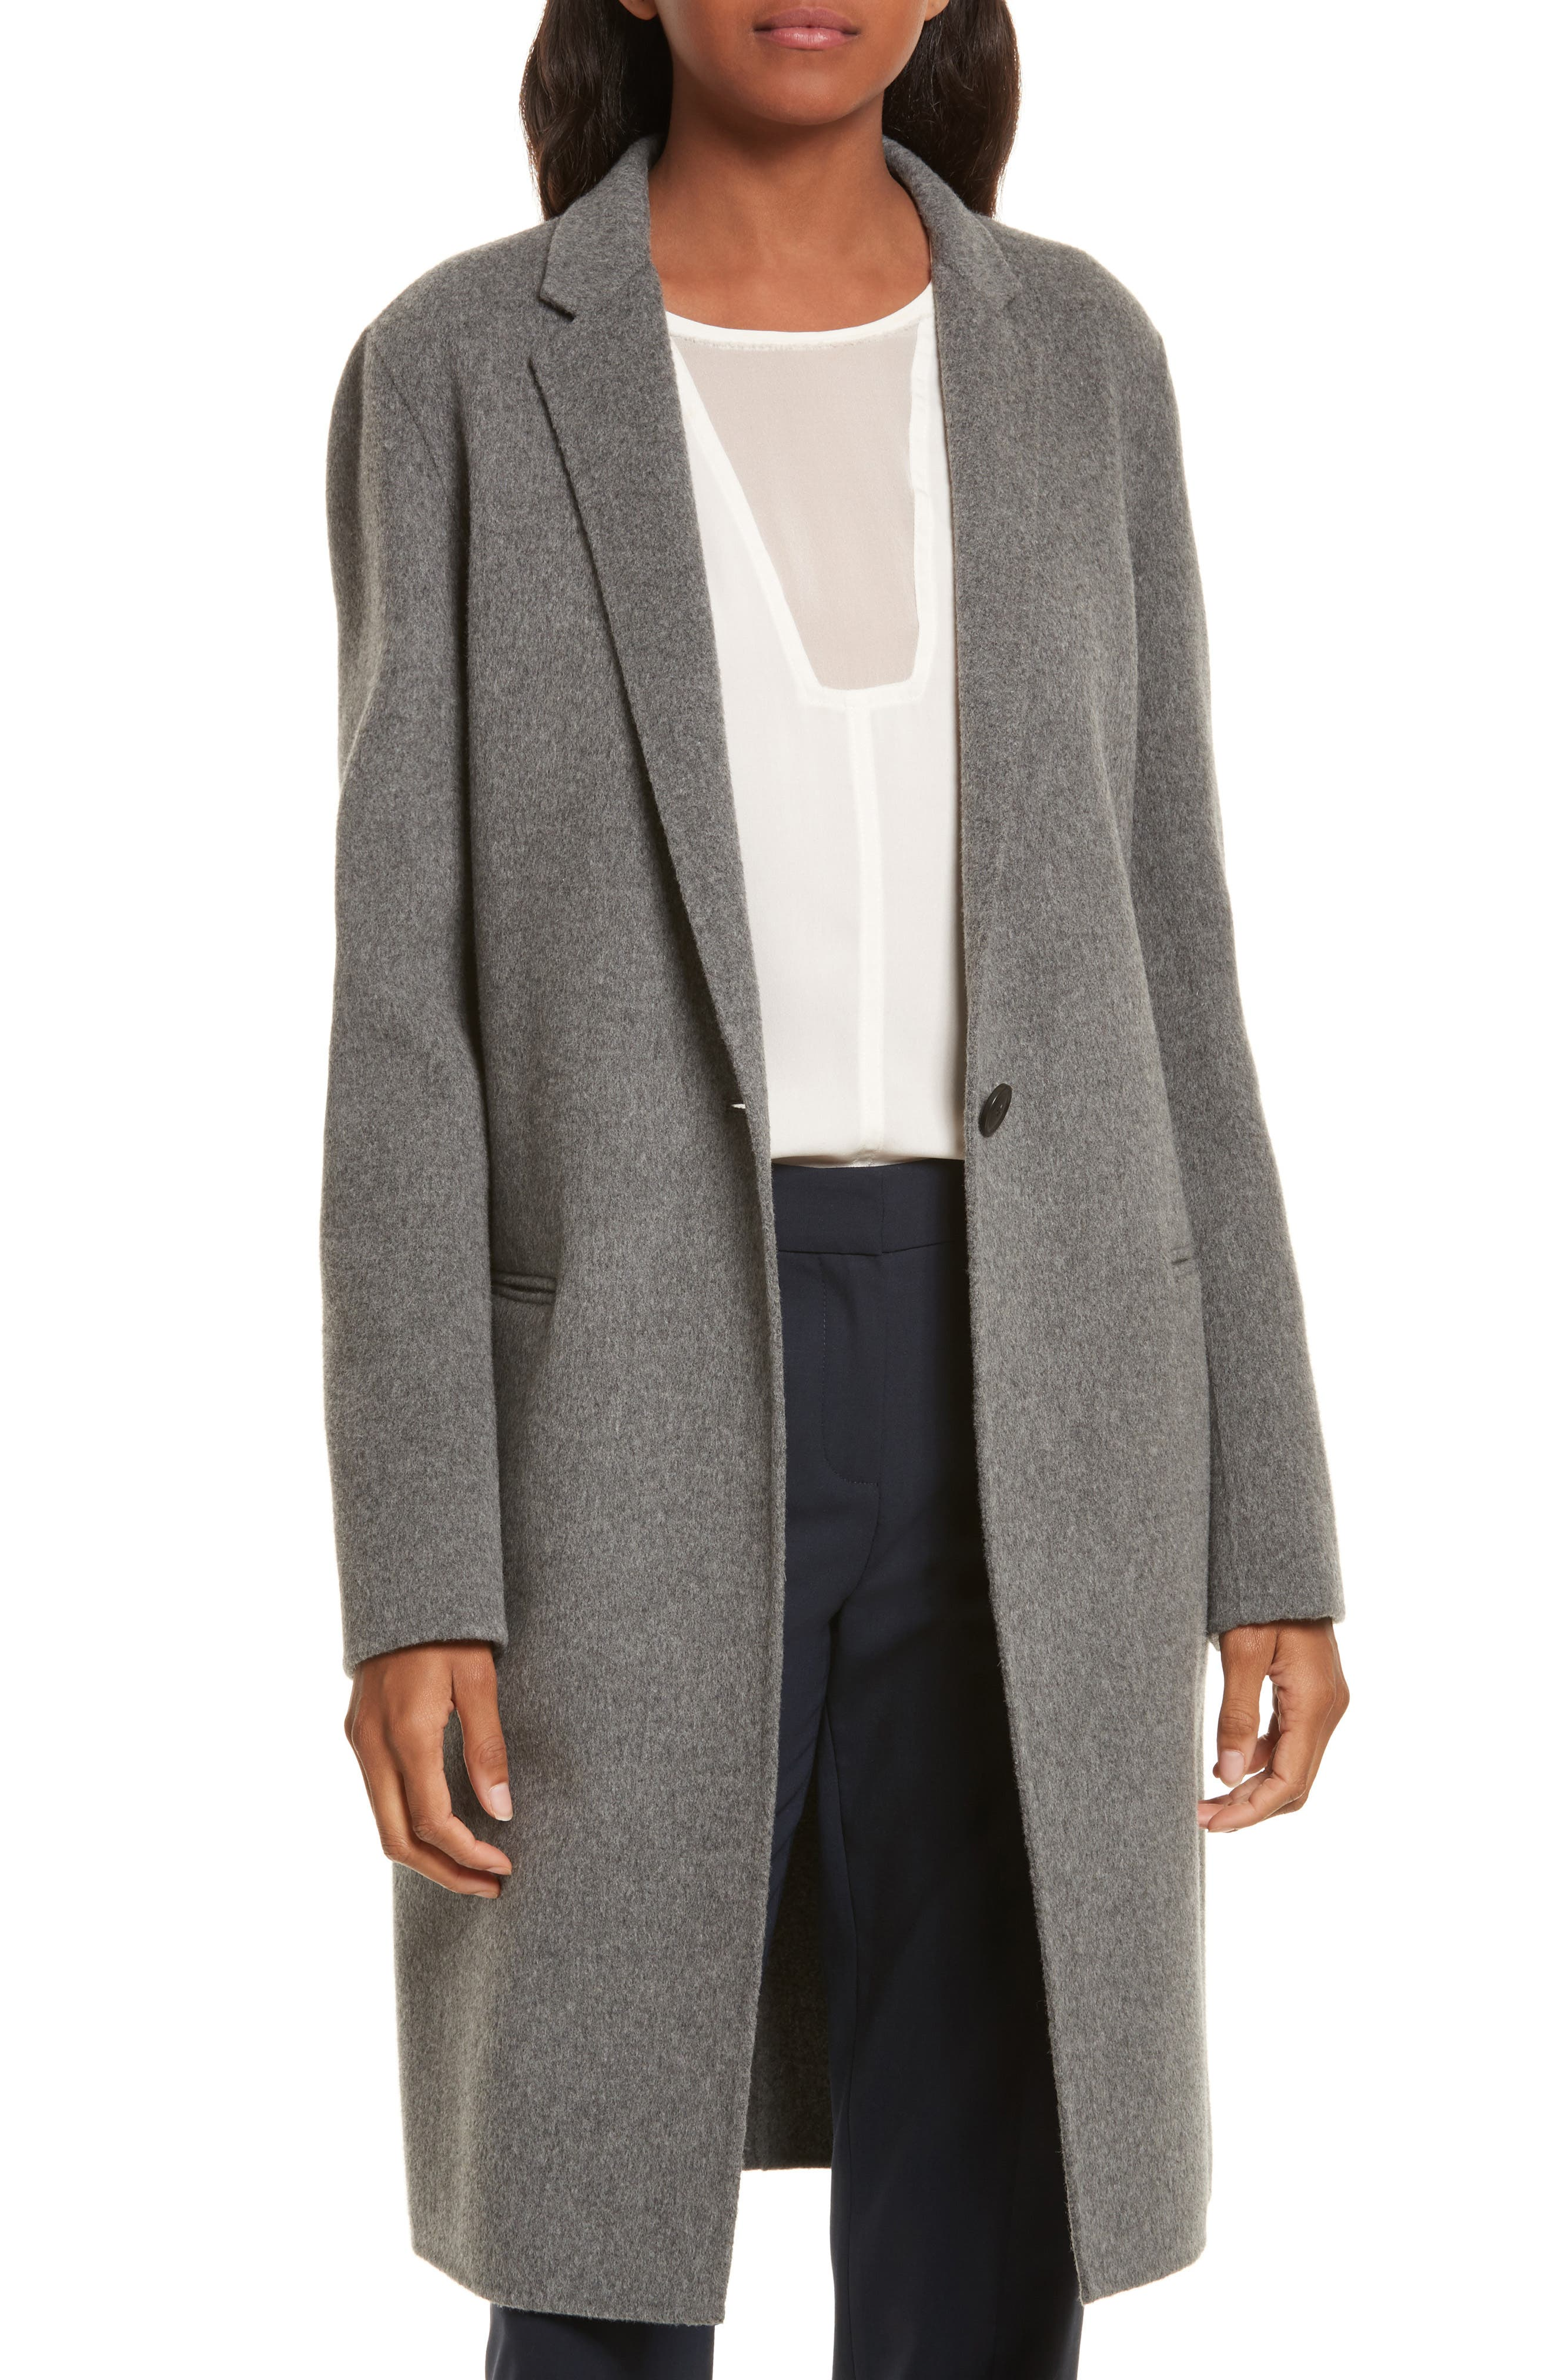 New Divide Wool & Cashmere Coat,                             Main thumbnail 1, color,                             021